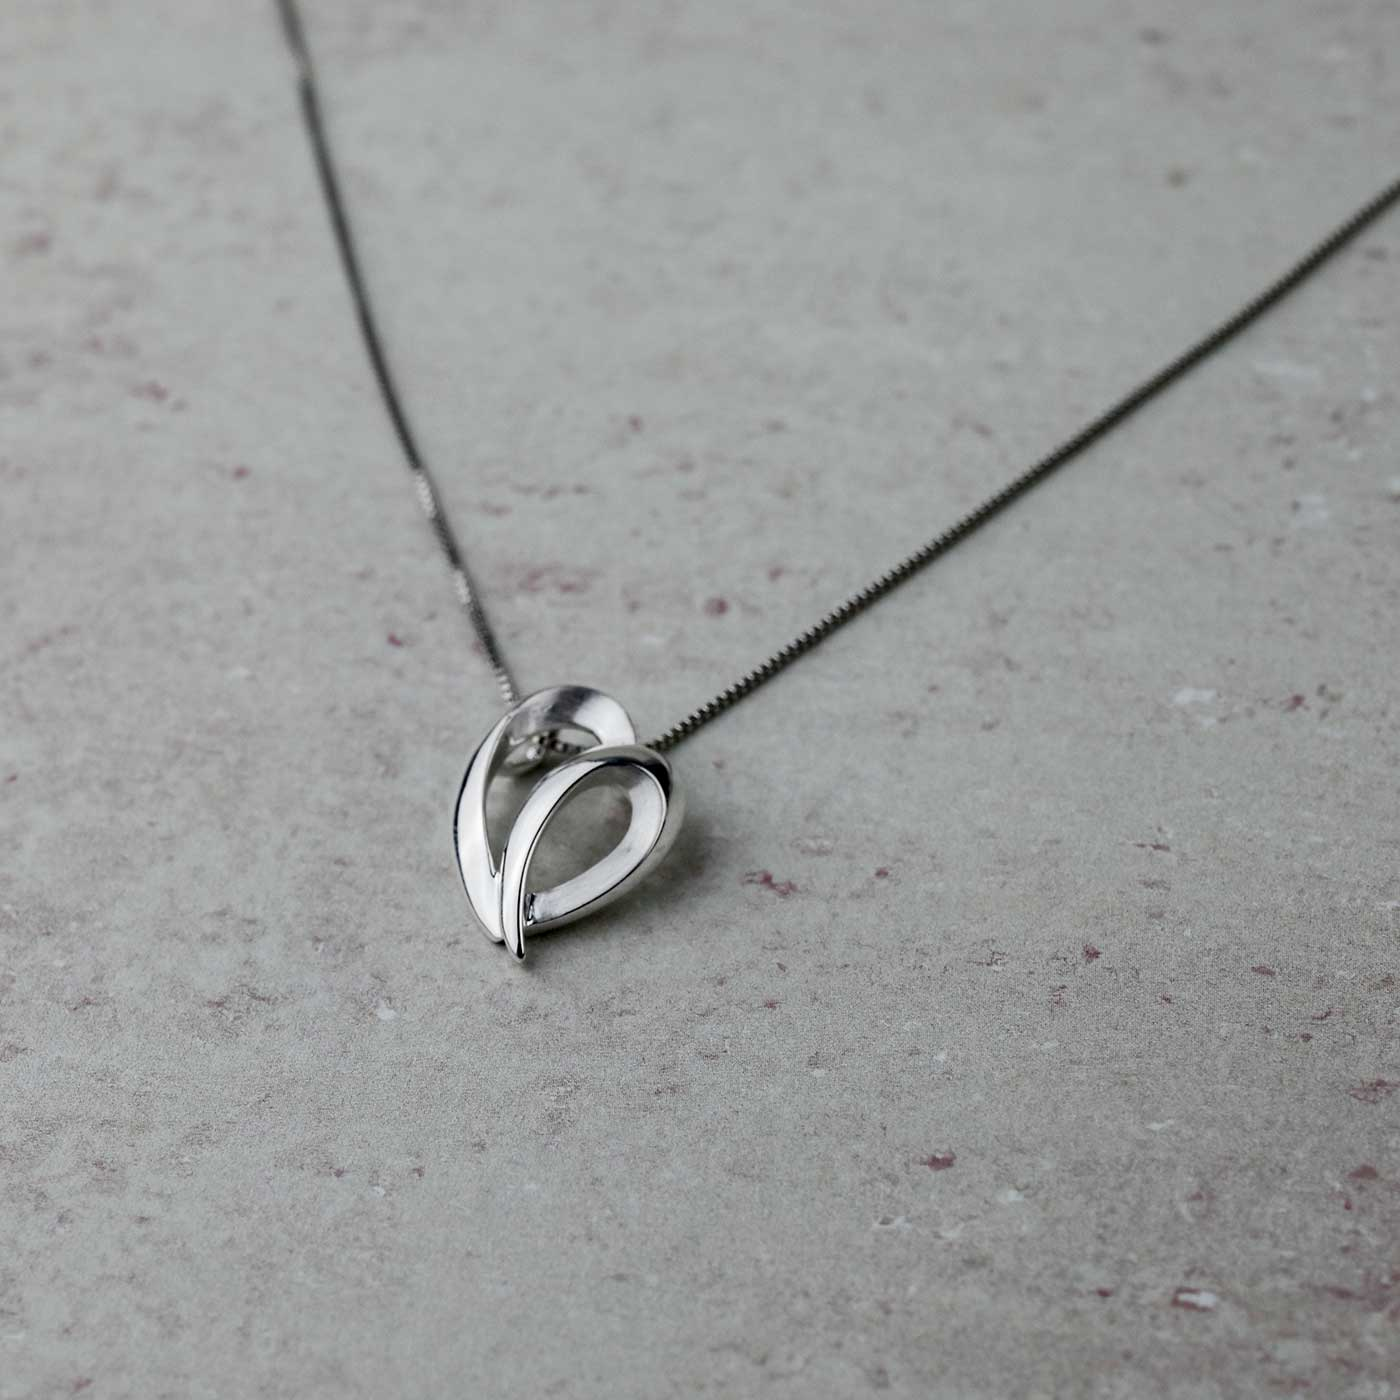 Leaping Heart Pendant